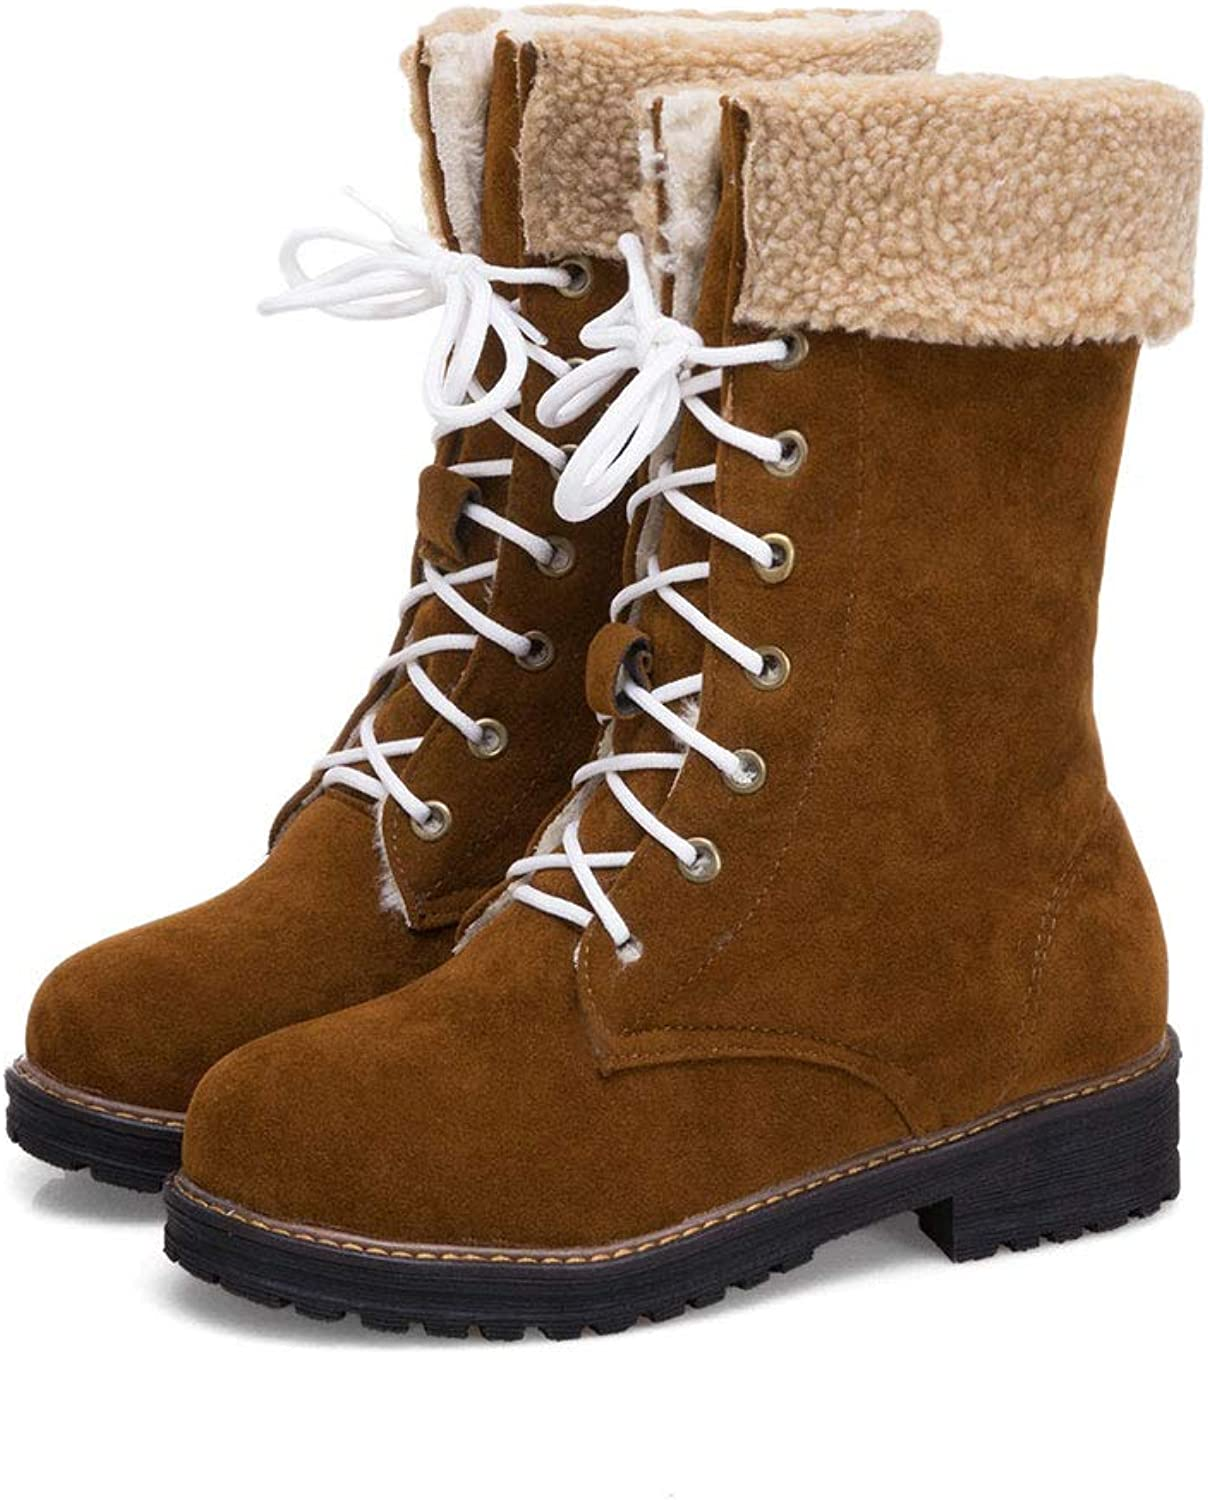 Low Heel Mid Boots, Square with Lace Short Boots Round Head Low Tube Martin Boots Waterproof Platform Knight Boots Warm Thick Ladies Cotton shoes